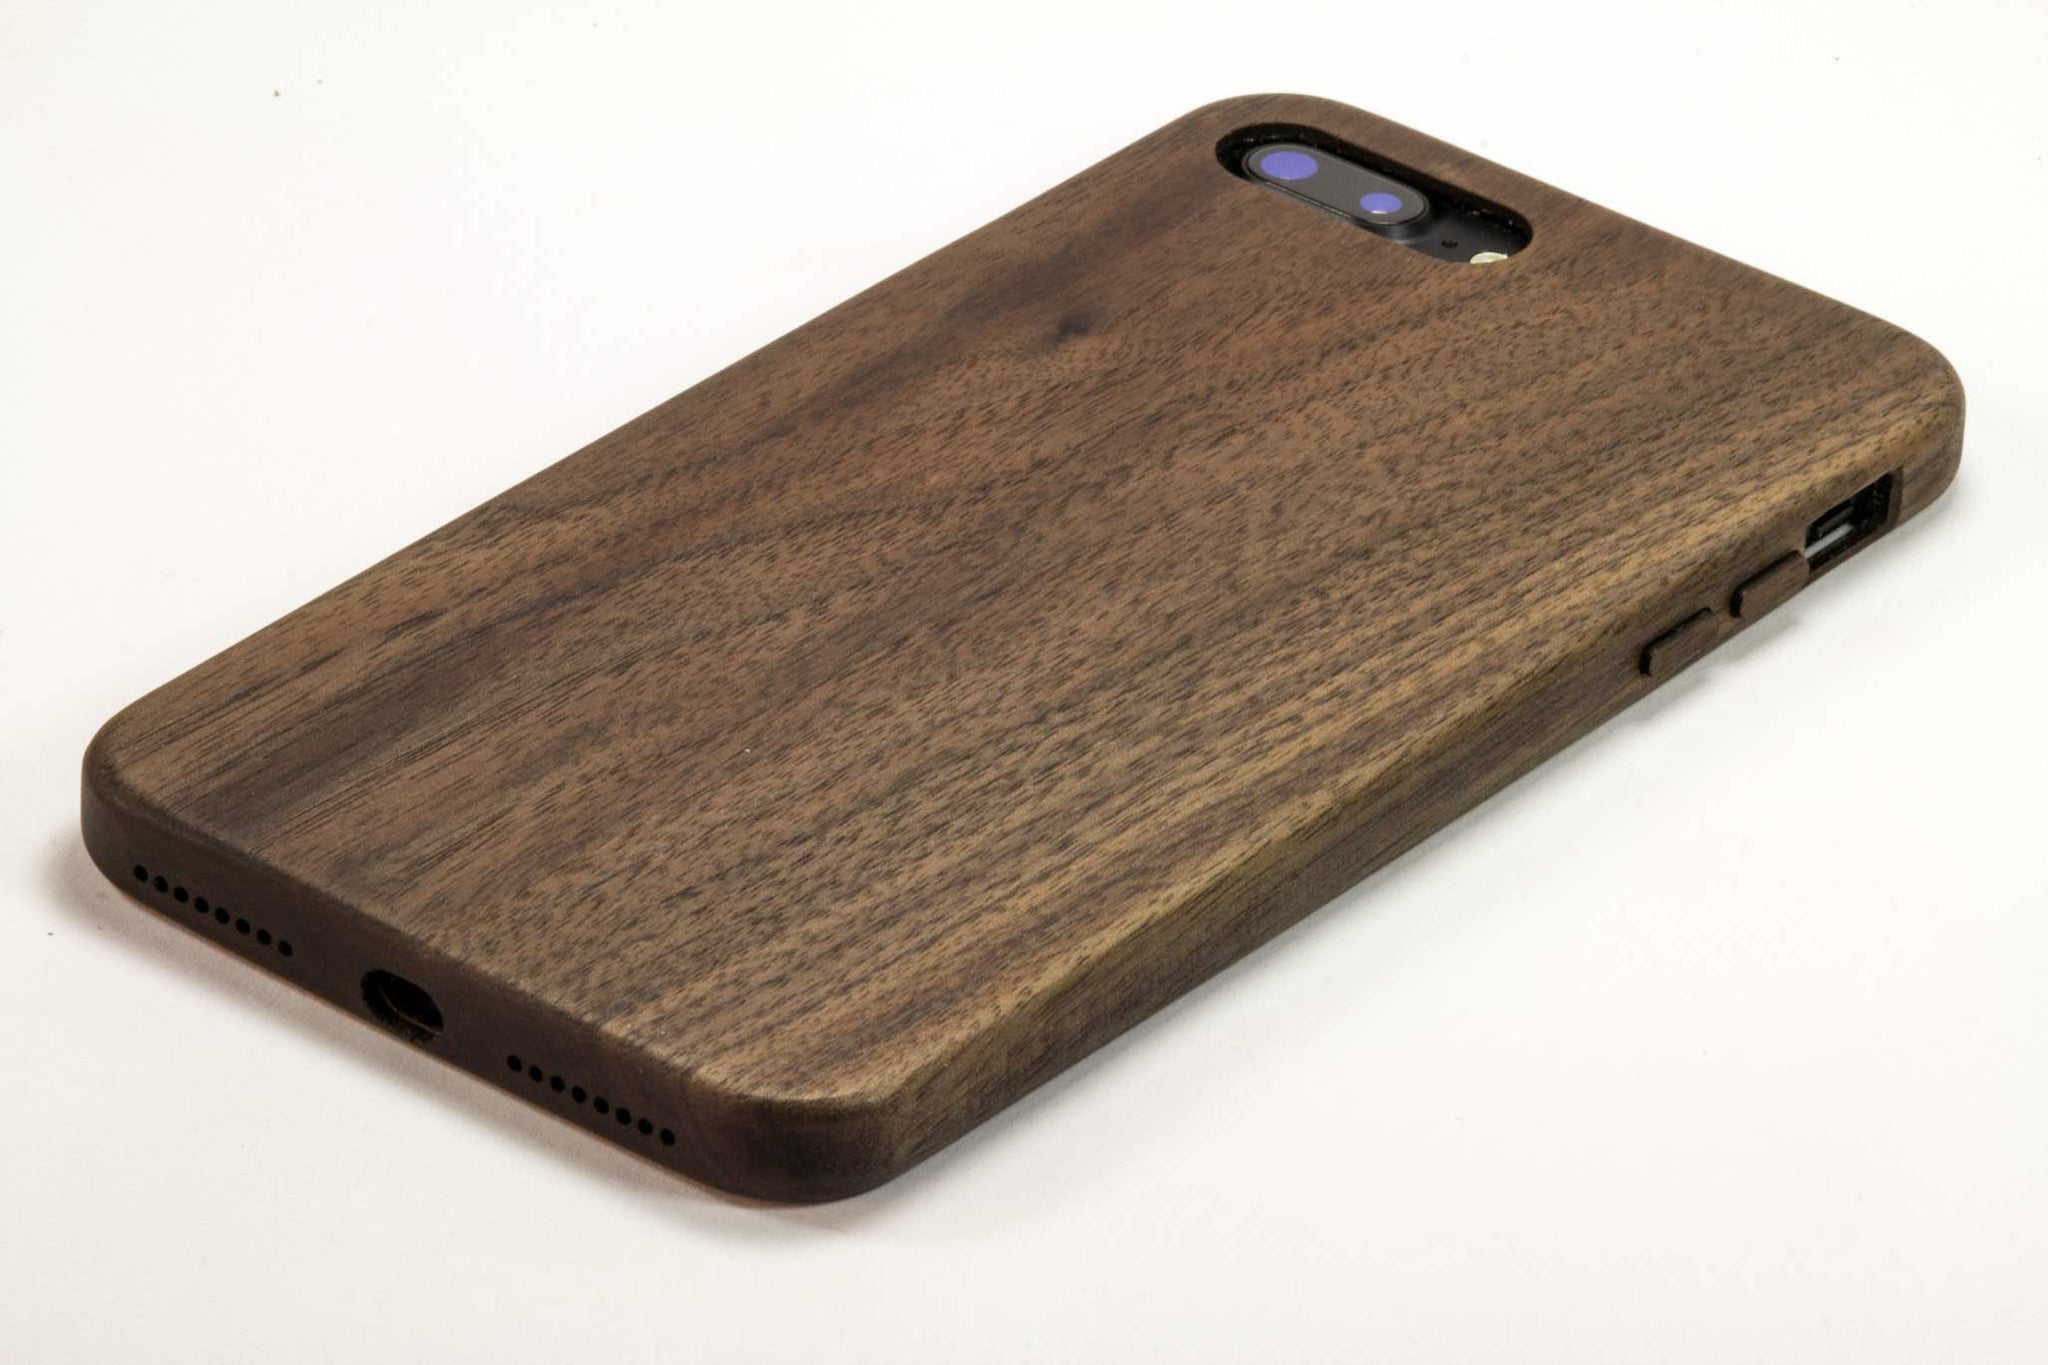 Wood Cases For Iphone 7 6s 6 Plus Se 5 Custom Wooden